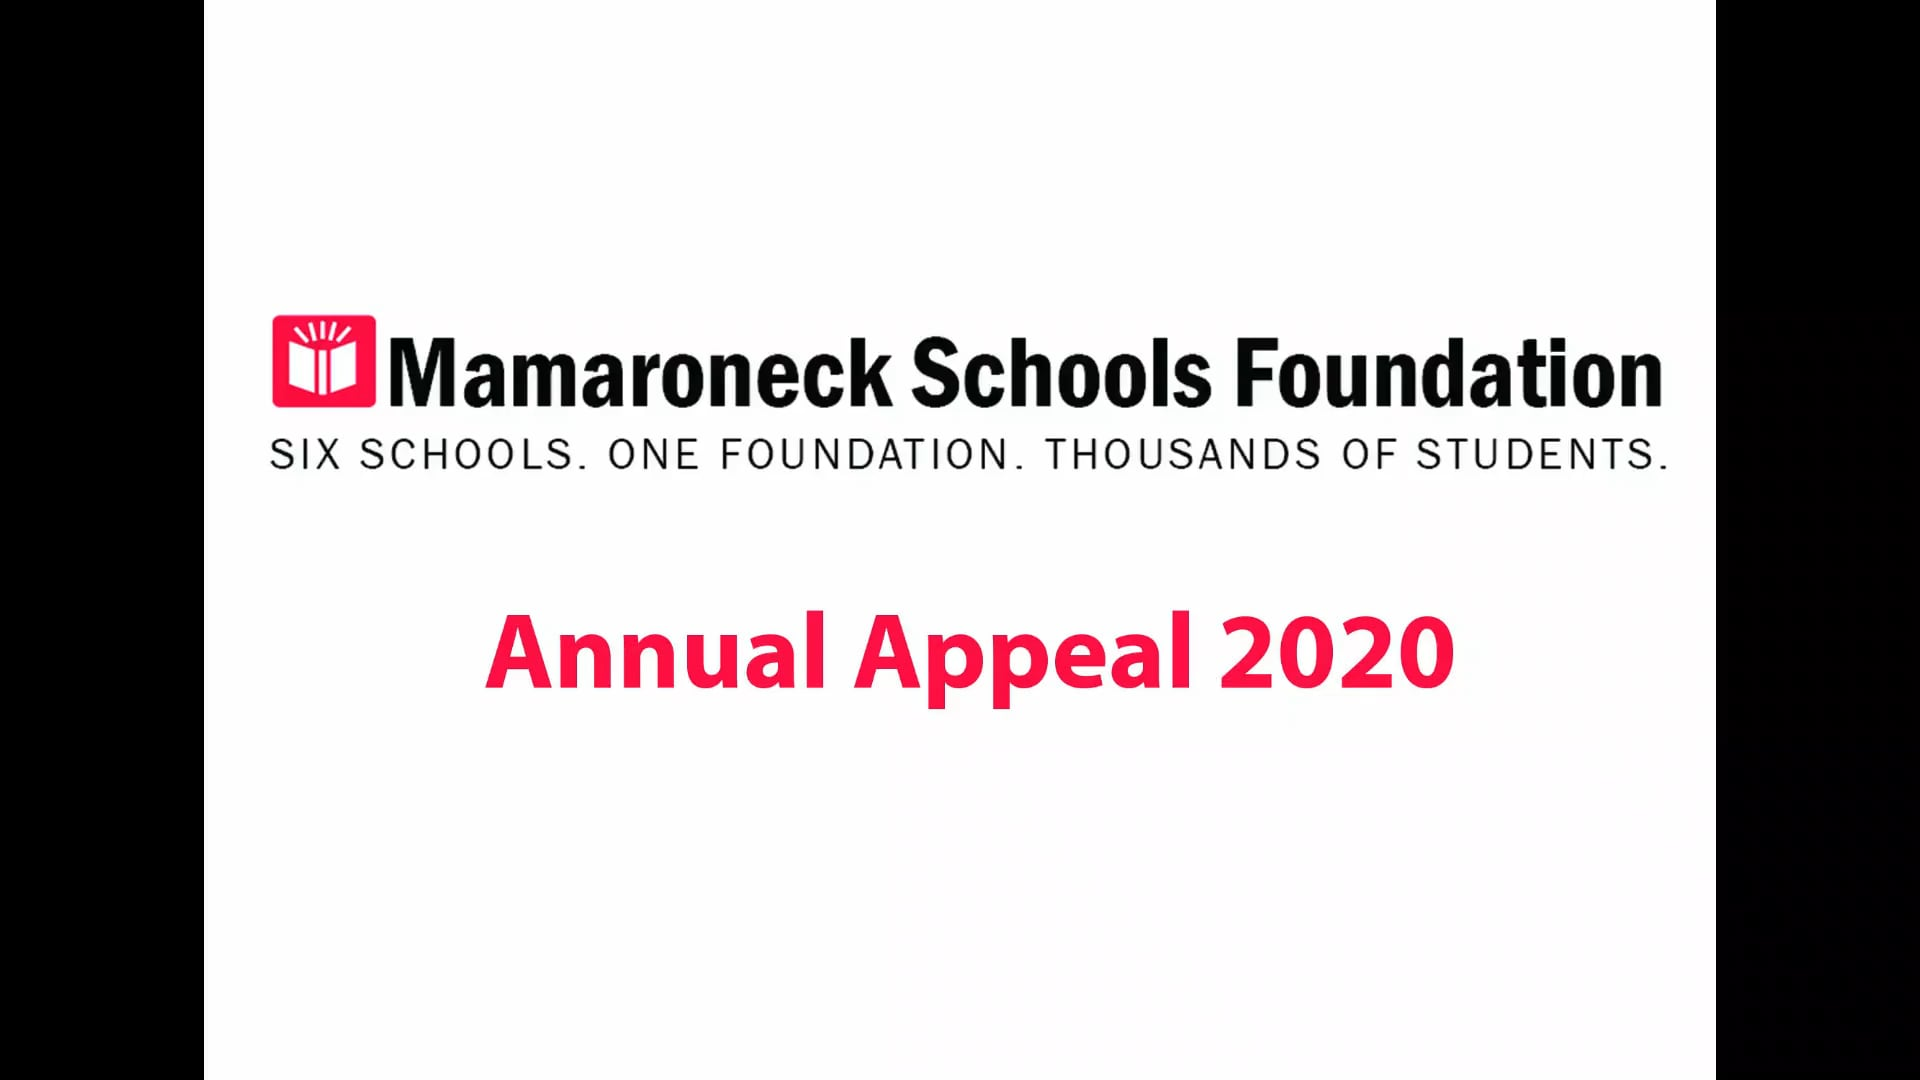 MSF 2020 Annual Appeal